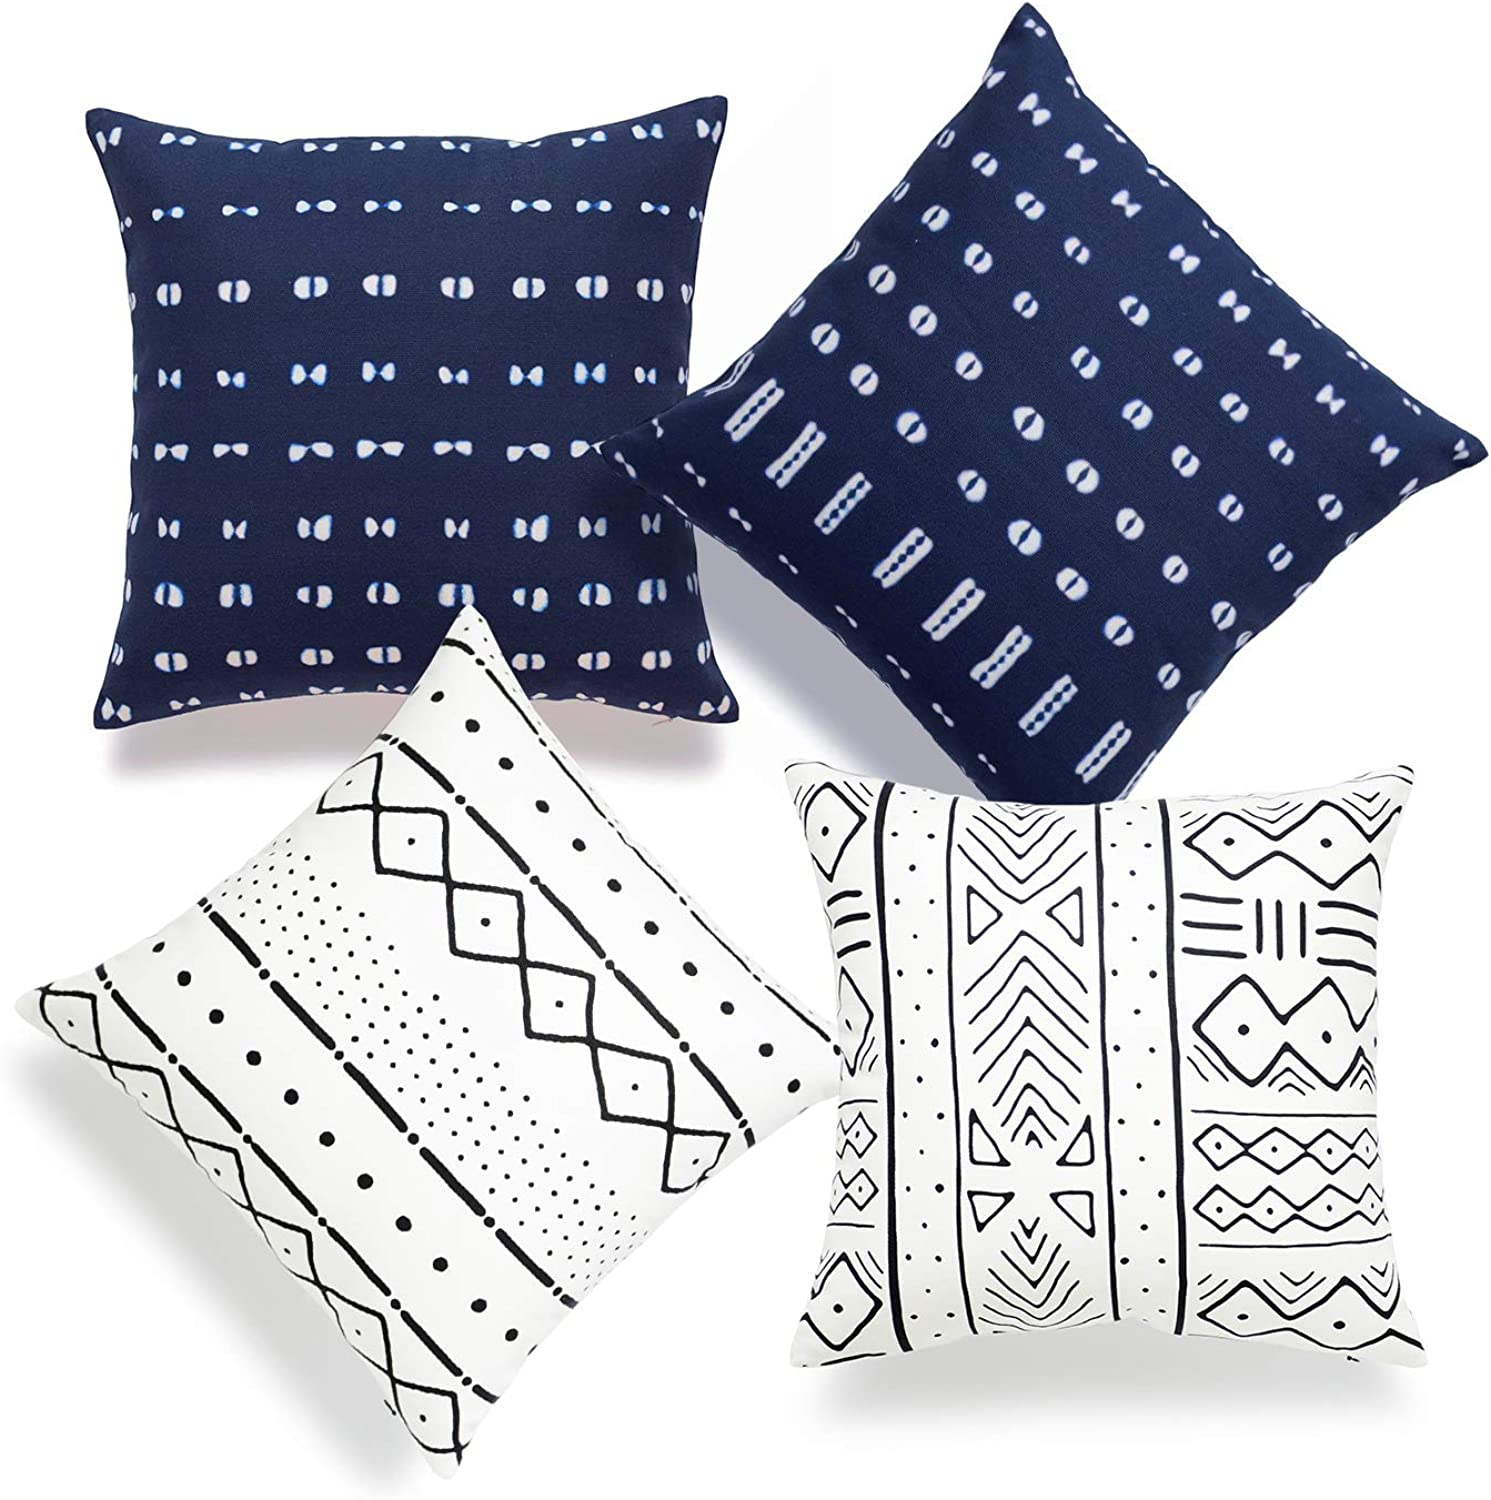 Hofdeco African Mudcloth Pillow Cover ONLY, Natural White, Indigo Shibori Inspired Print, 18 x18 , Set of 4